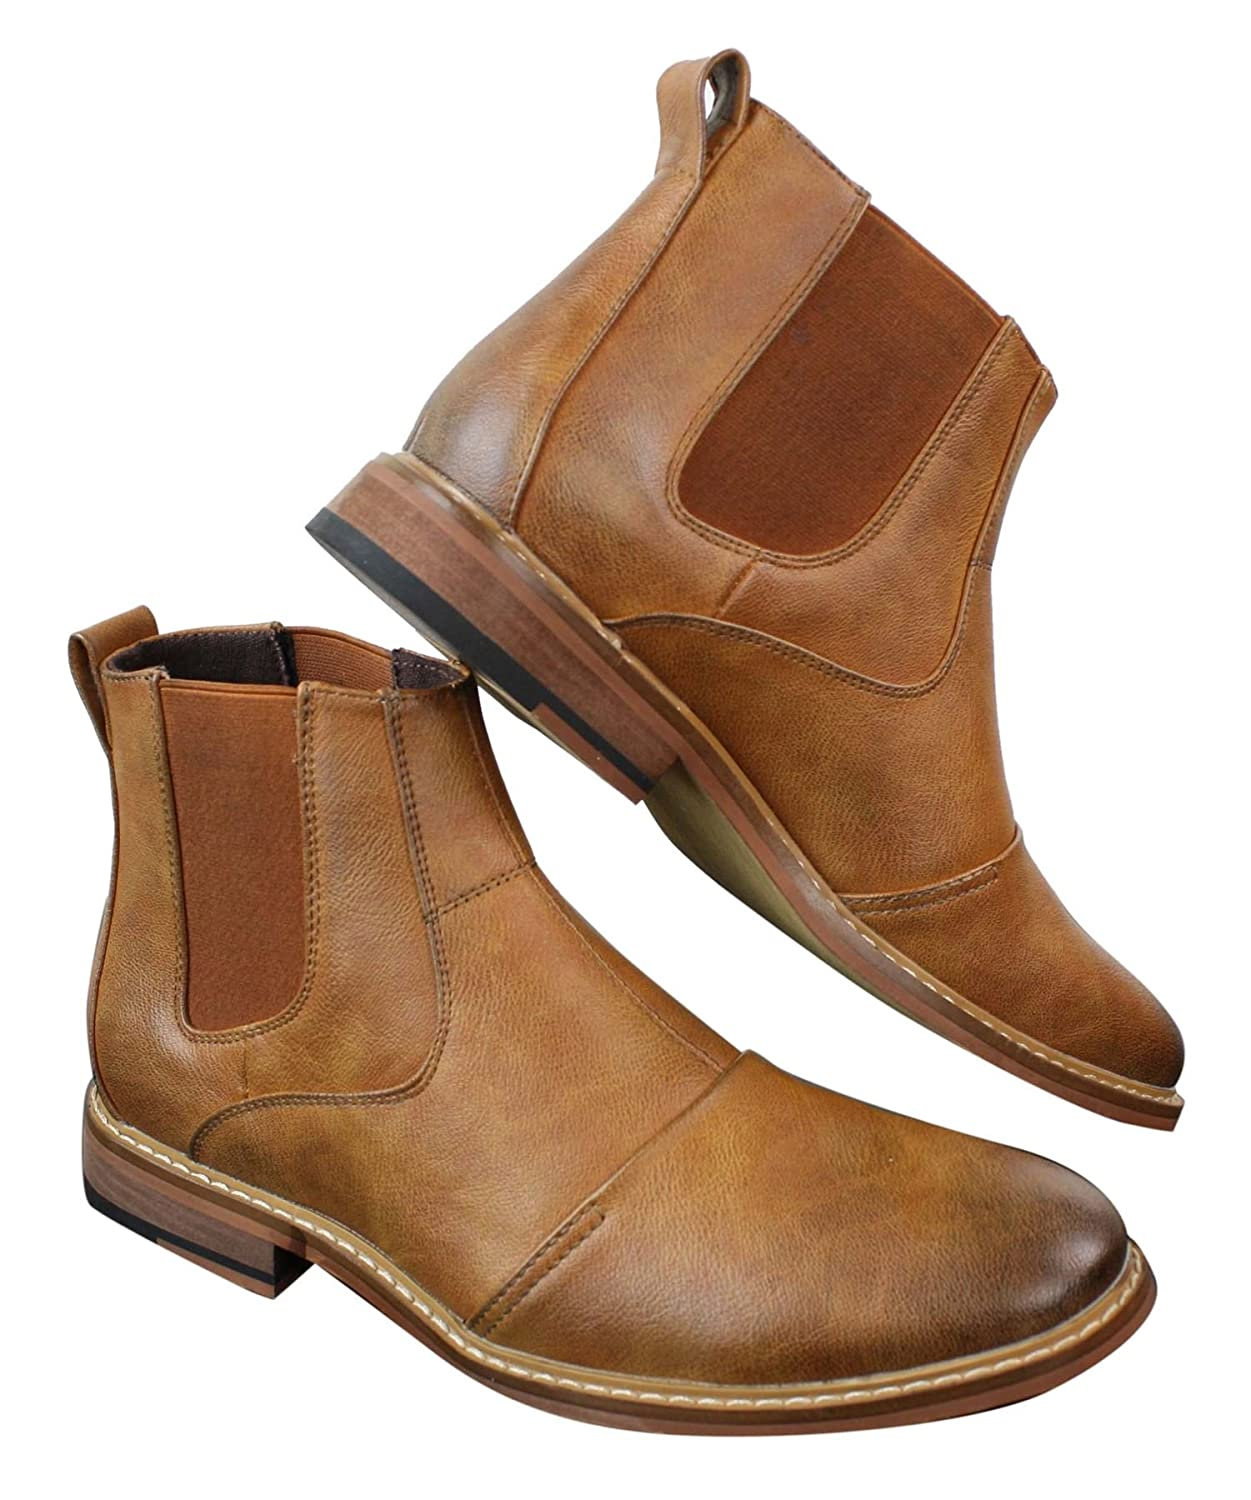 Mens Slip On /& Laced Tan Brown Military Brouge Boots Smart Casual Leather Lined